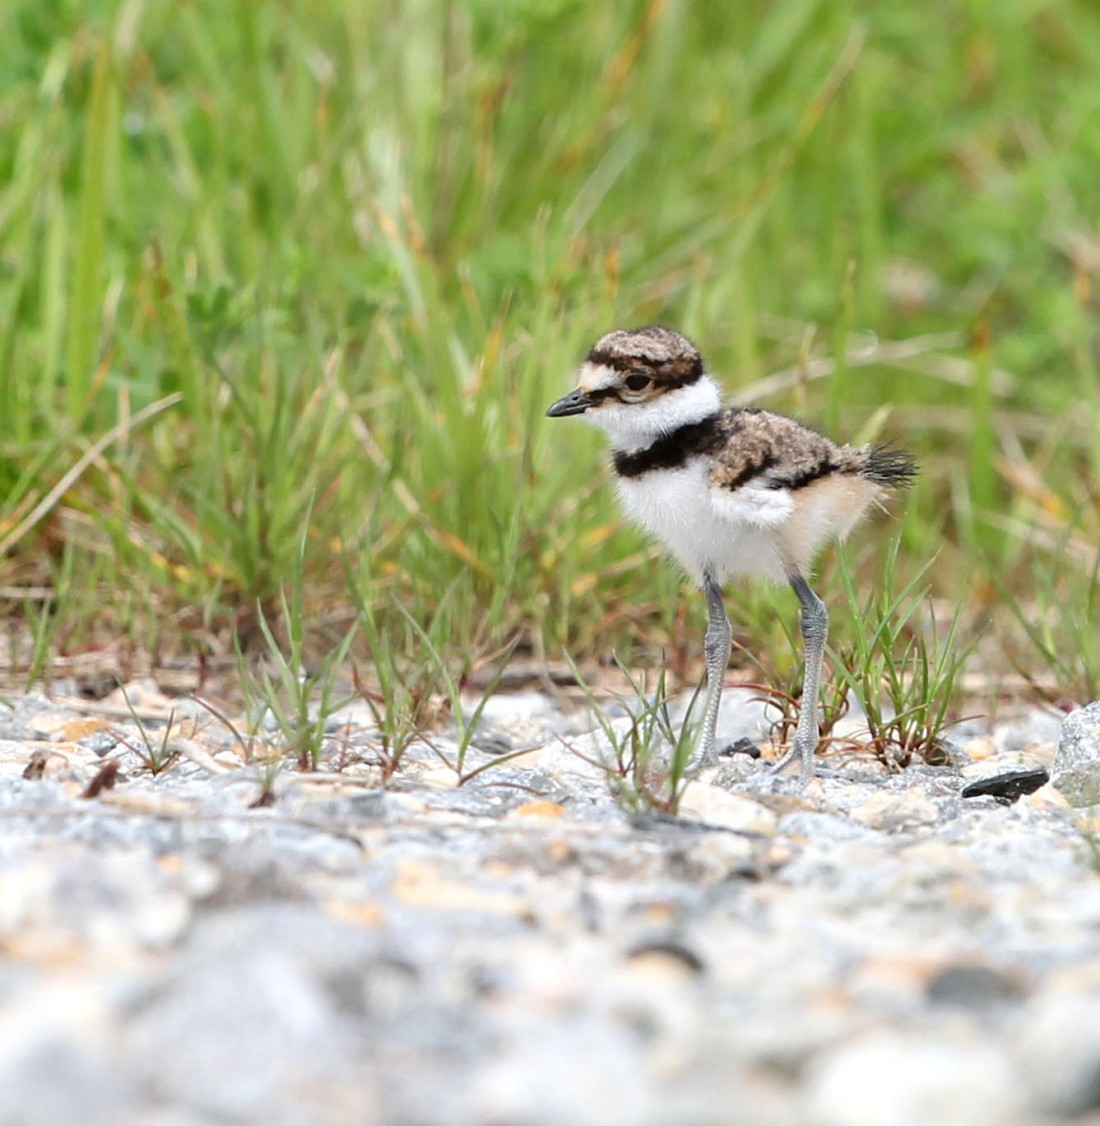 One-week-old Killdeer chick